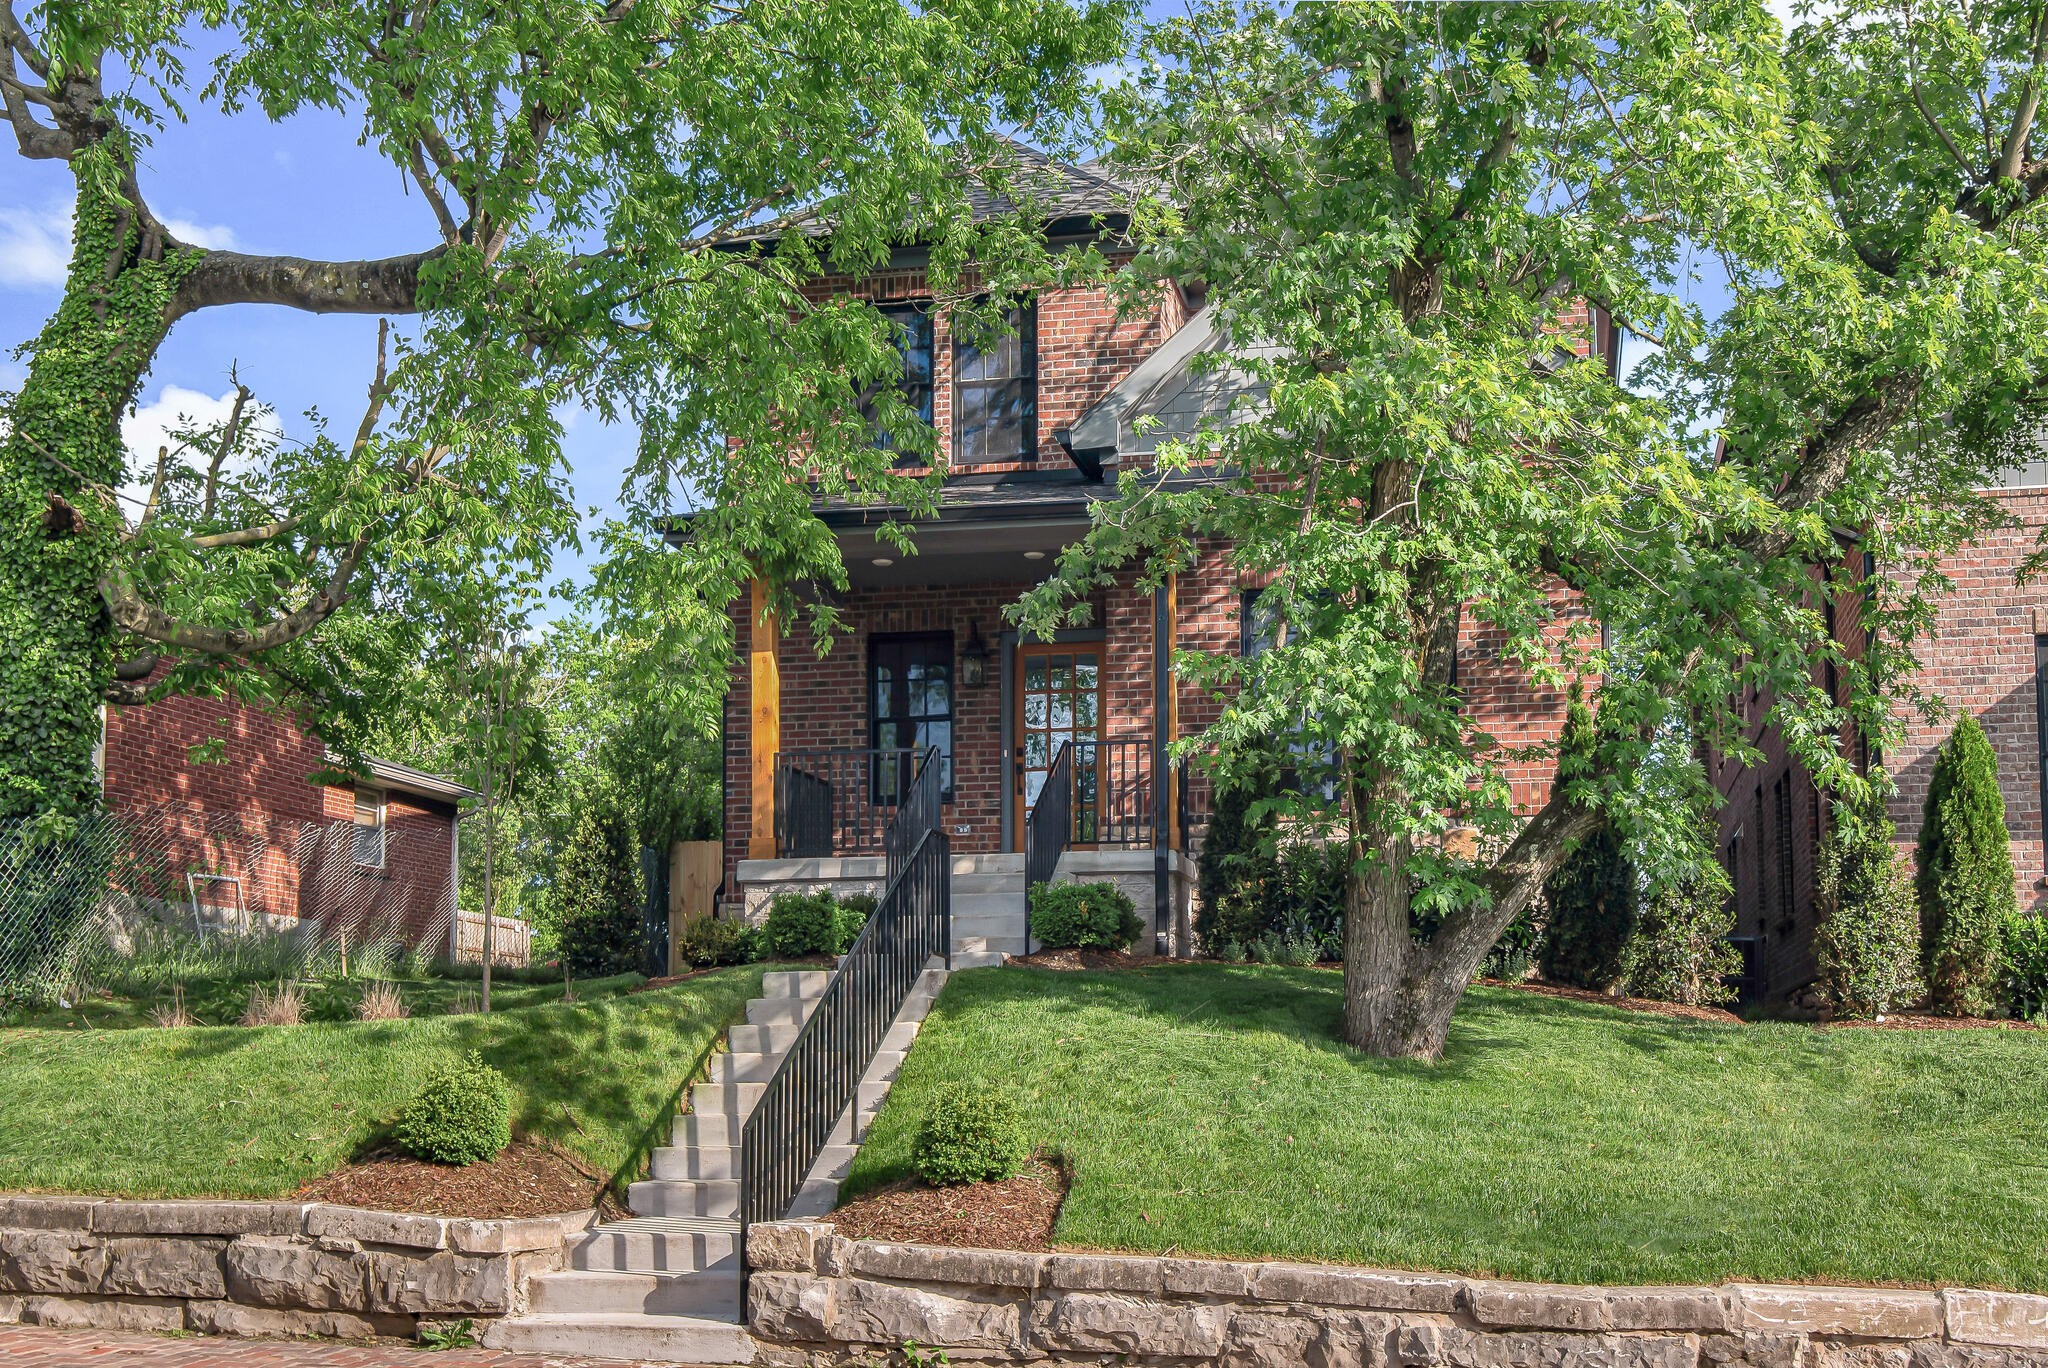 This Historic Edgefield stunner is what all new construction in a Historic Neighborhood should aspire to be. The Gourmet kitchen features an oversized island & butler's pantry. The Master Suite features two large closets and an upgraded bathroom. The office on the main level can also be a 5th bedroom with a full bathroom. The second floor features a large family room, a study nook, a second laundry room, and upper rear deck. Located in one of Nashville's most walkable historic neighborhoods.